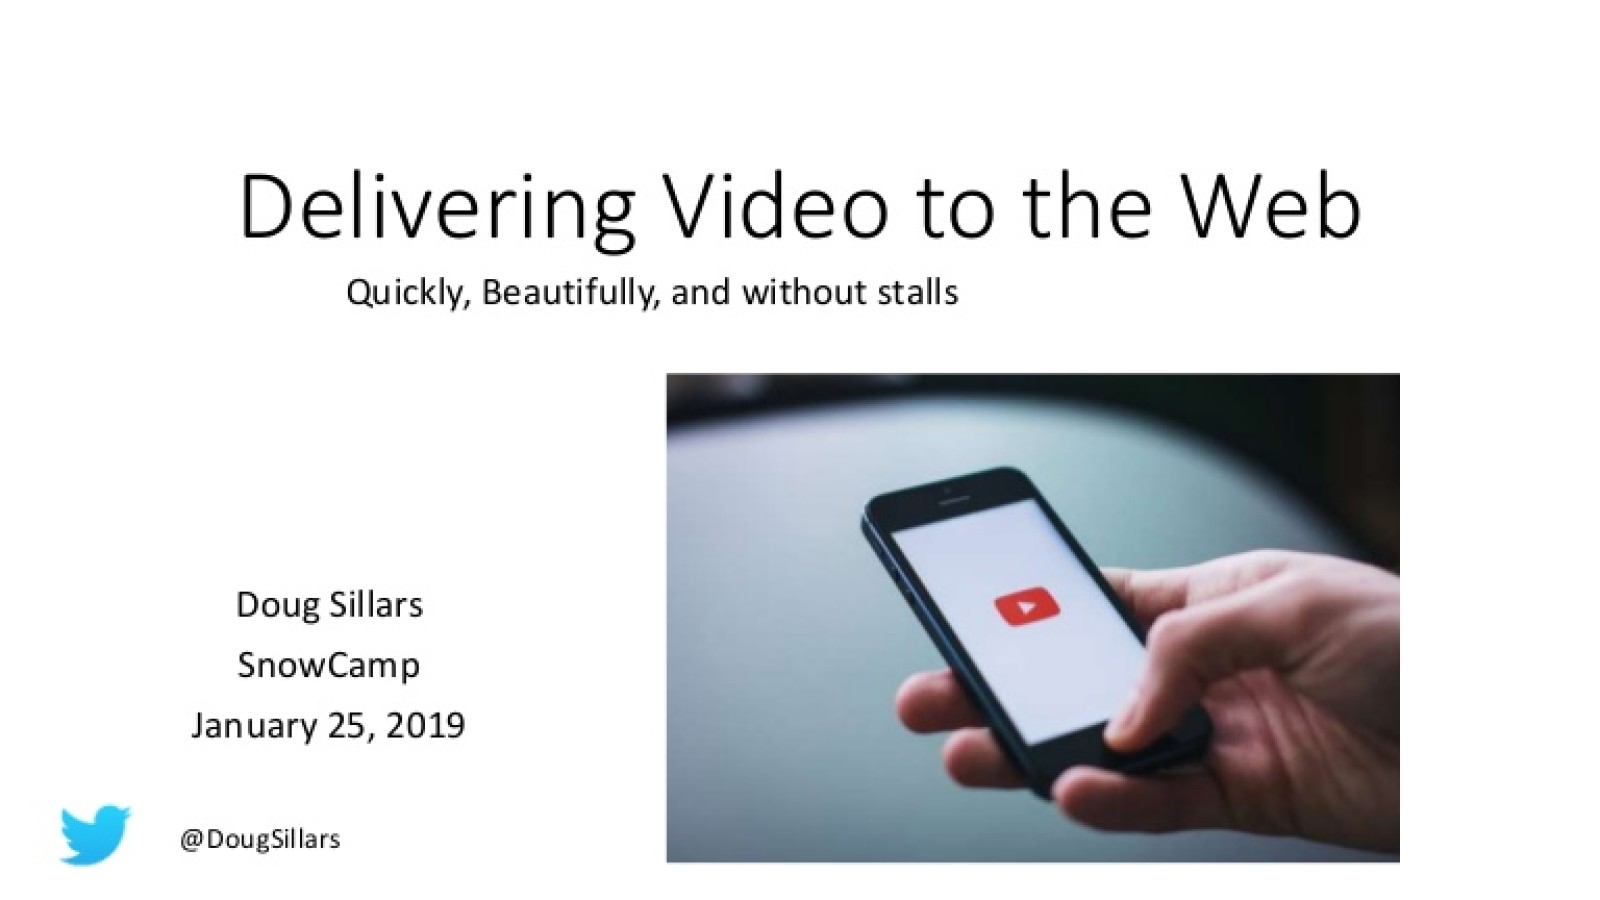 Stop Stalling! Delivering Fast Video without the Buffering